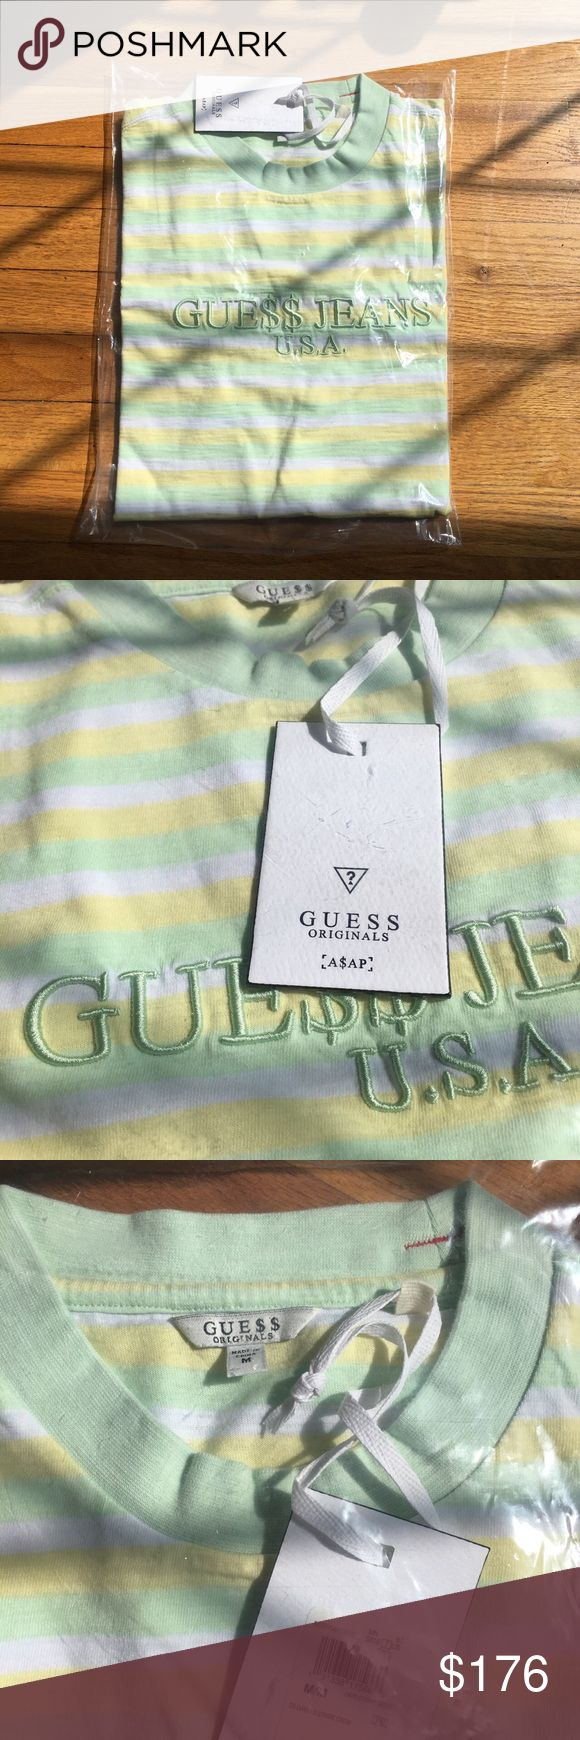 asap rocky x guess originals brand new never been. deadstock with tags. could fit a large Shirts Tees - Short Sleeve